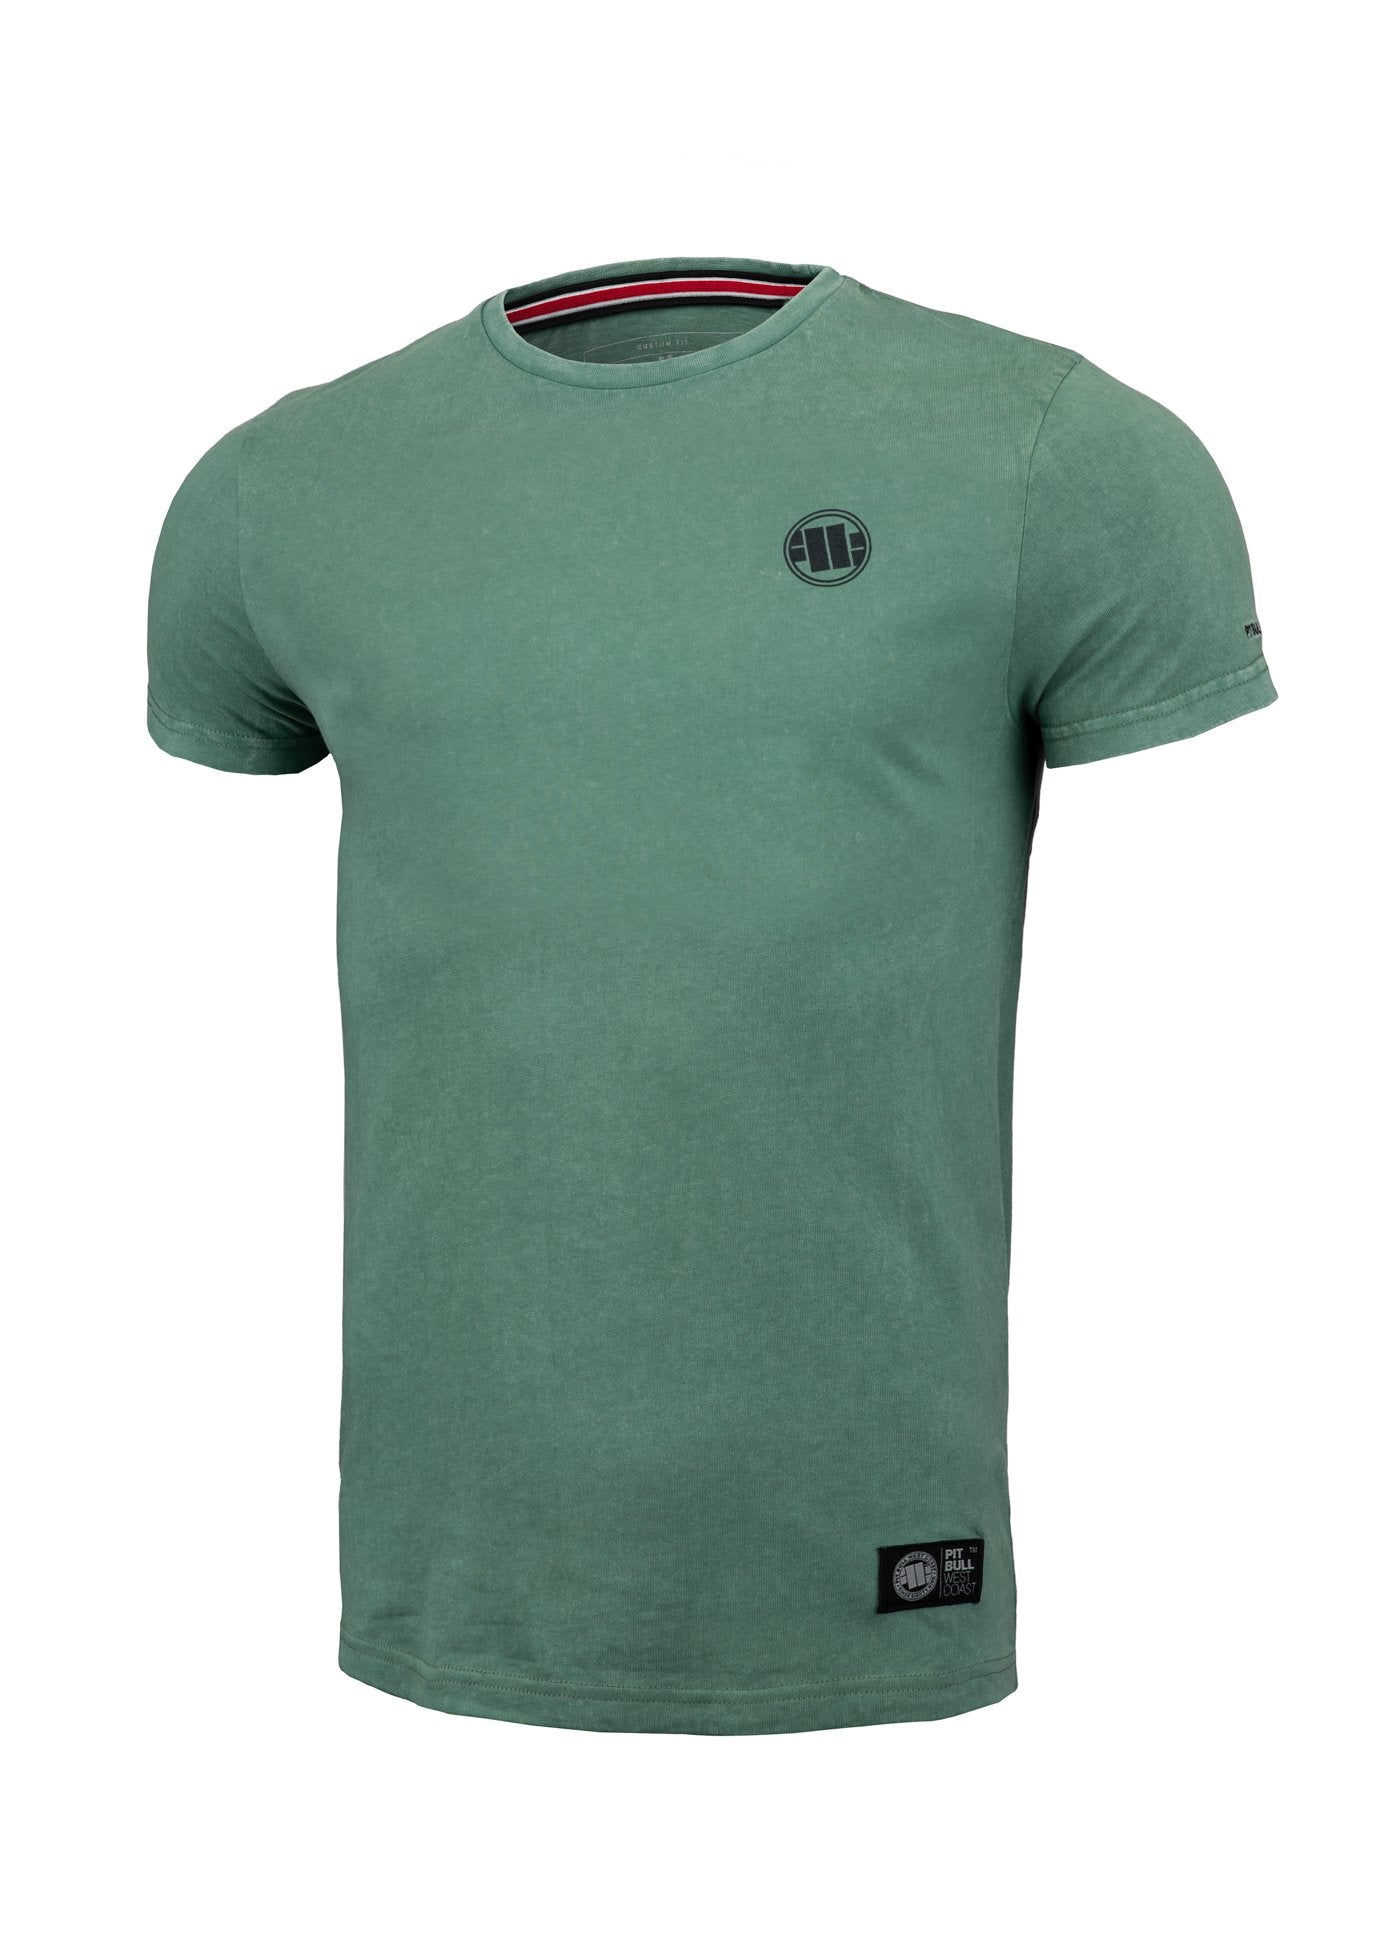 T-shirt Denim Small logo Green - Pitbull West Coast U.S.A.